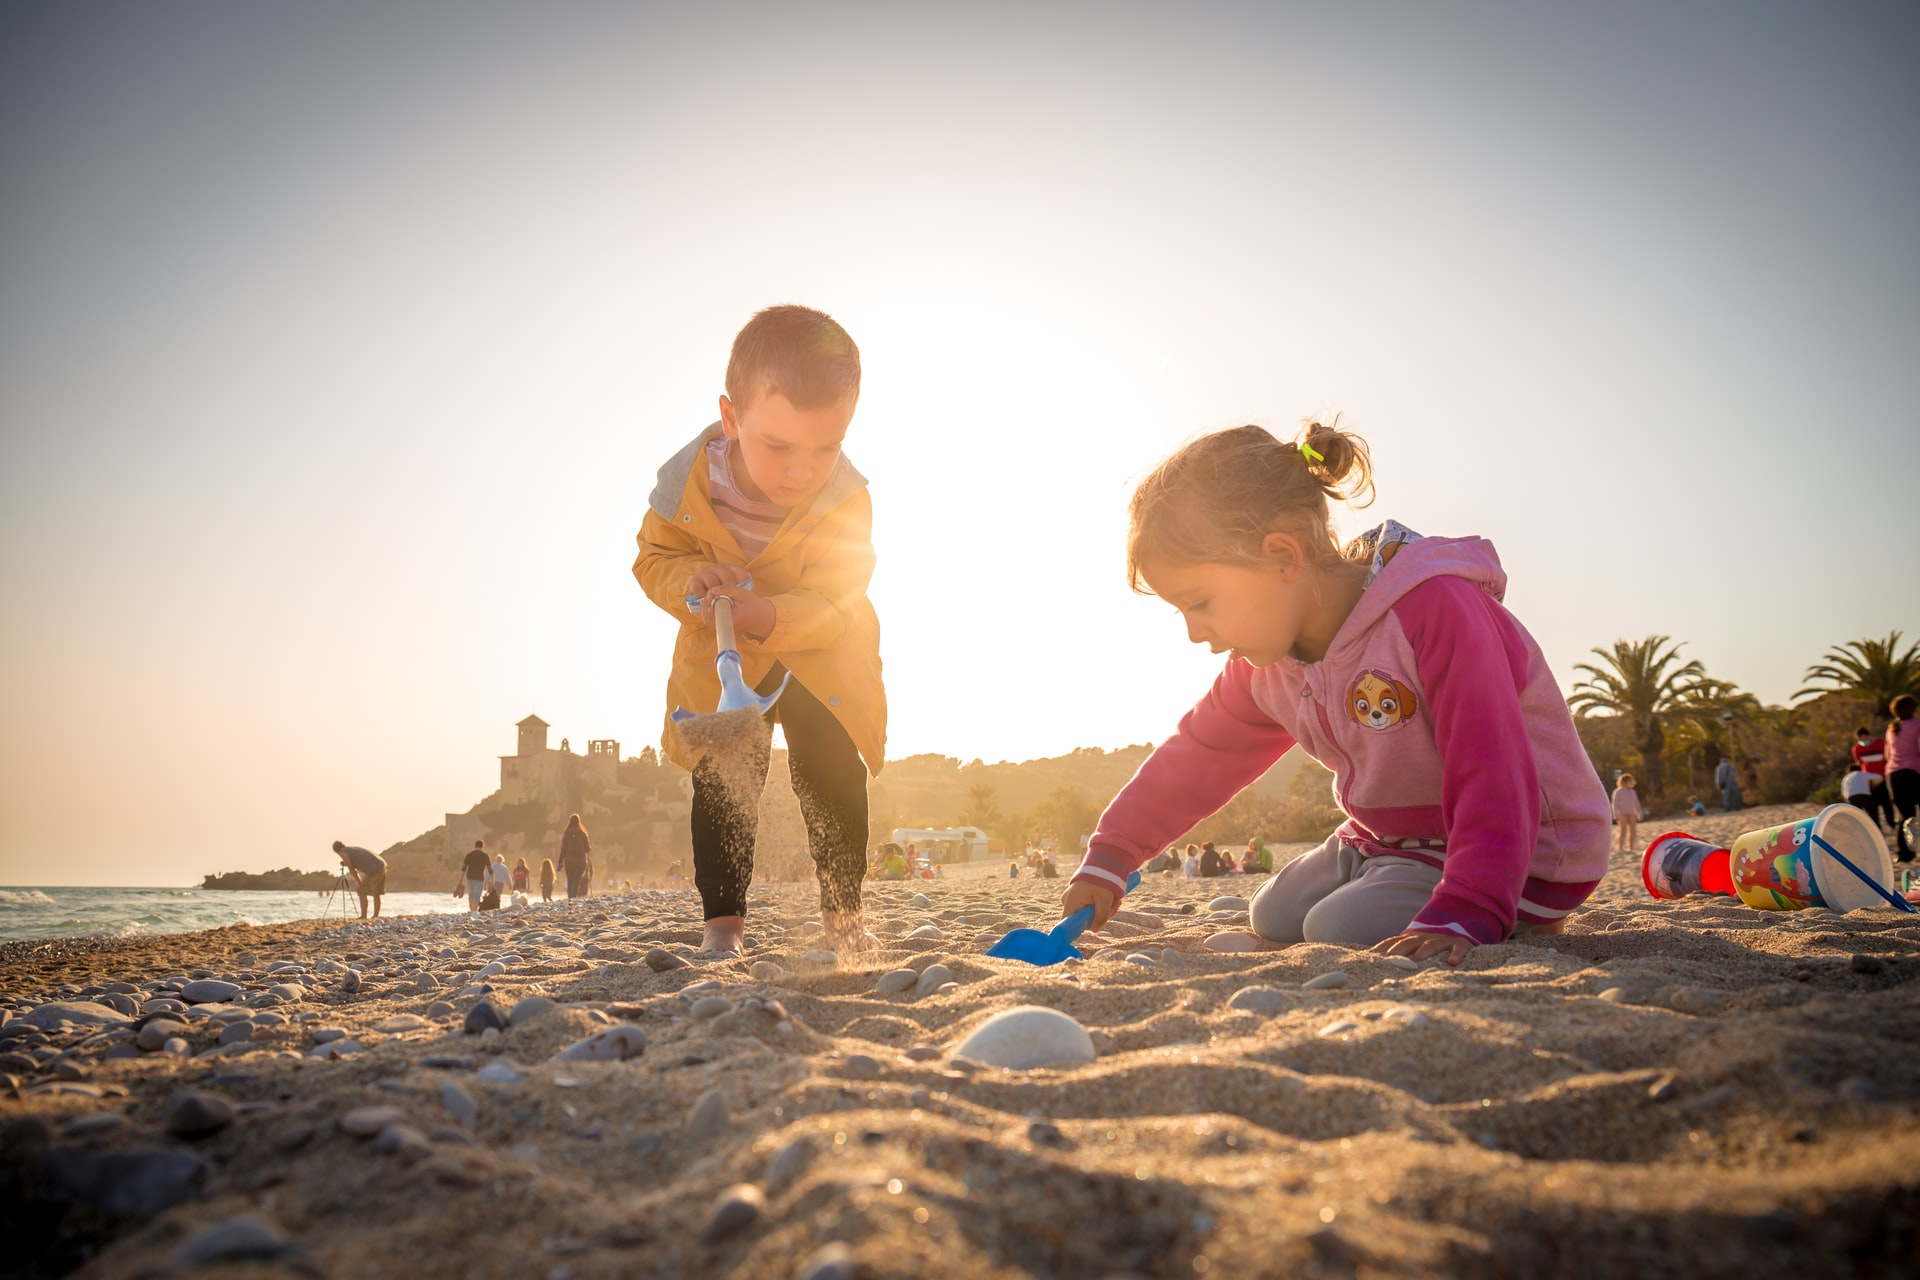 Prioritizing Play: Why it matters in elementary classrooms as we emerge from COVID-19